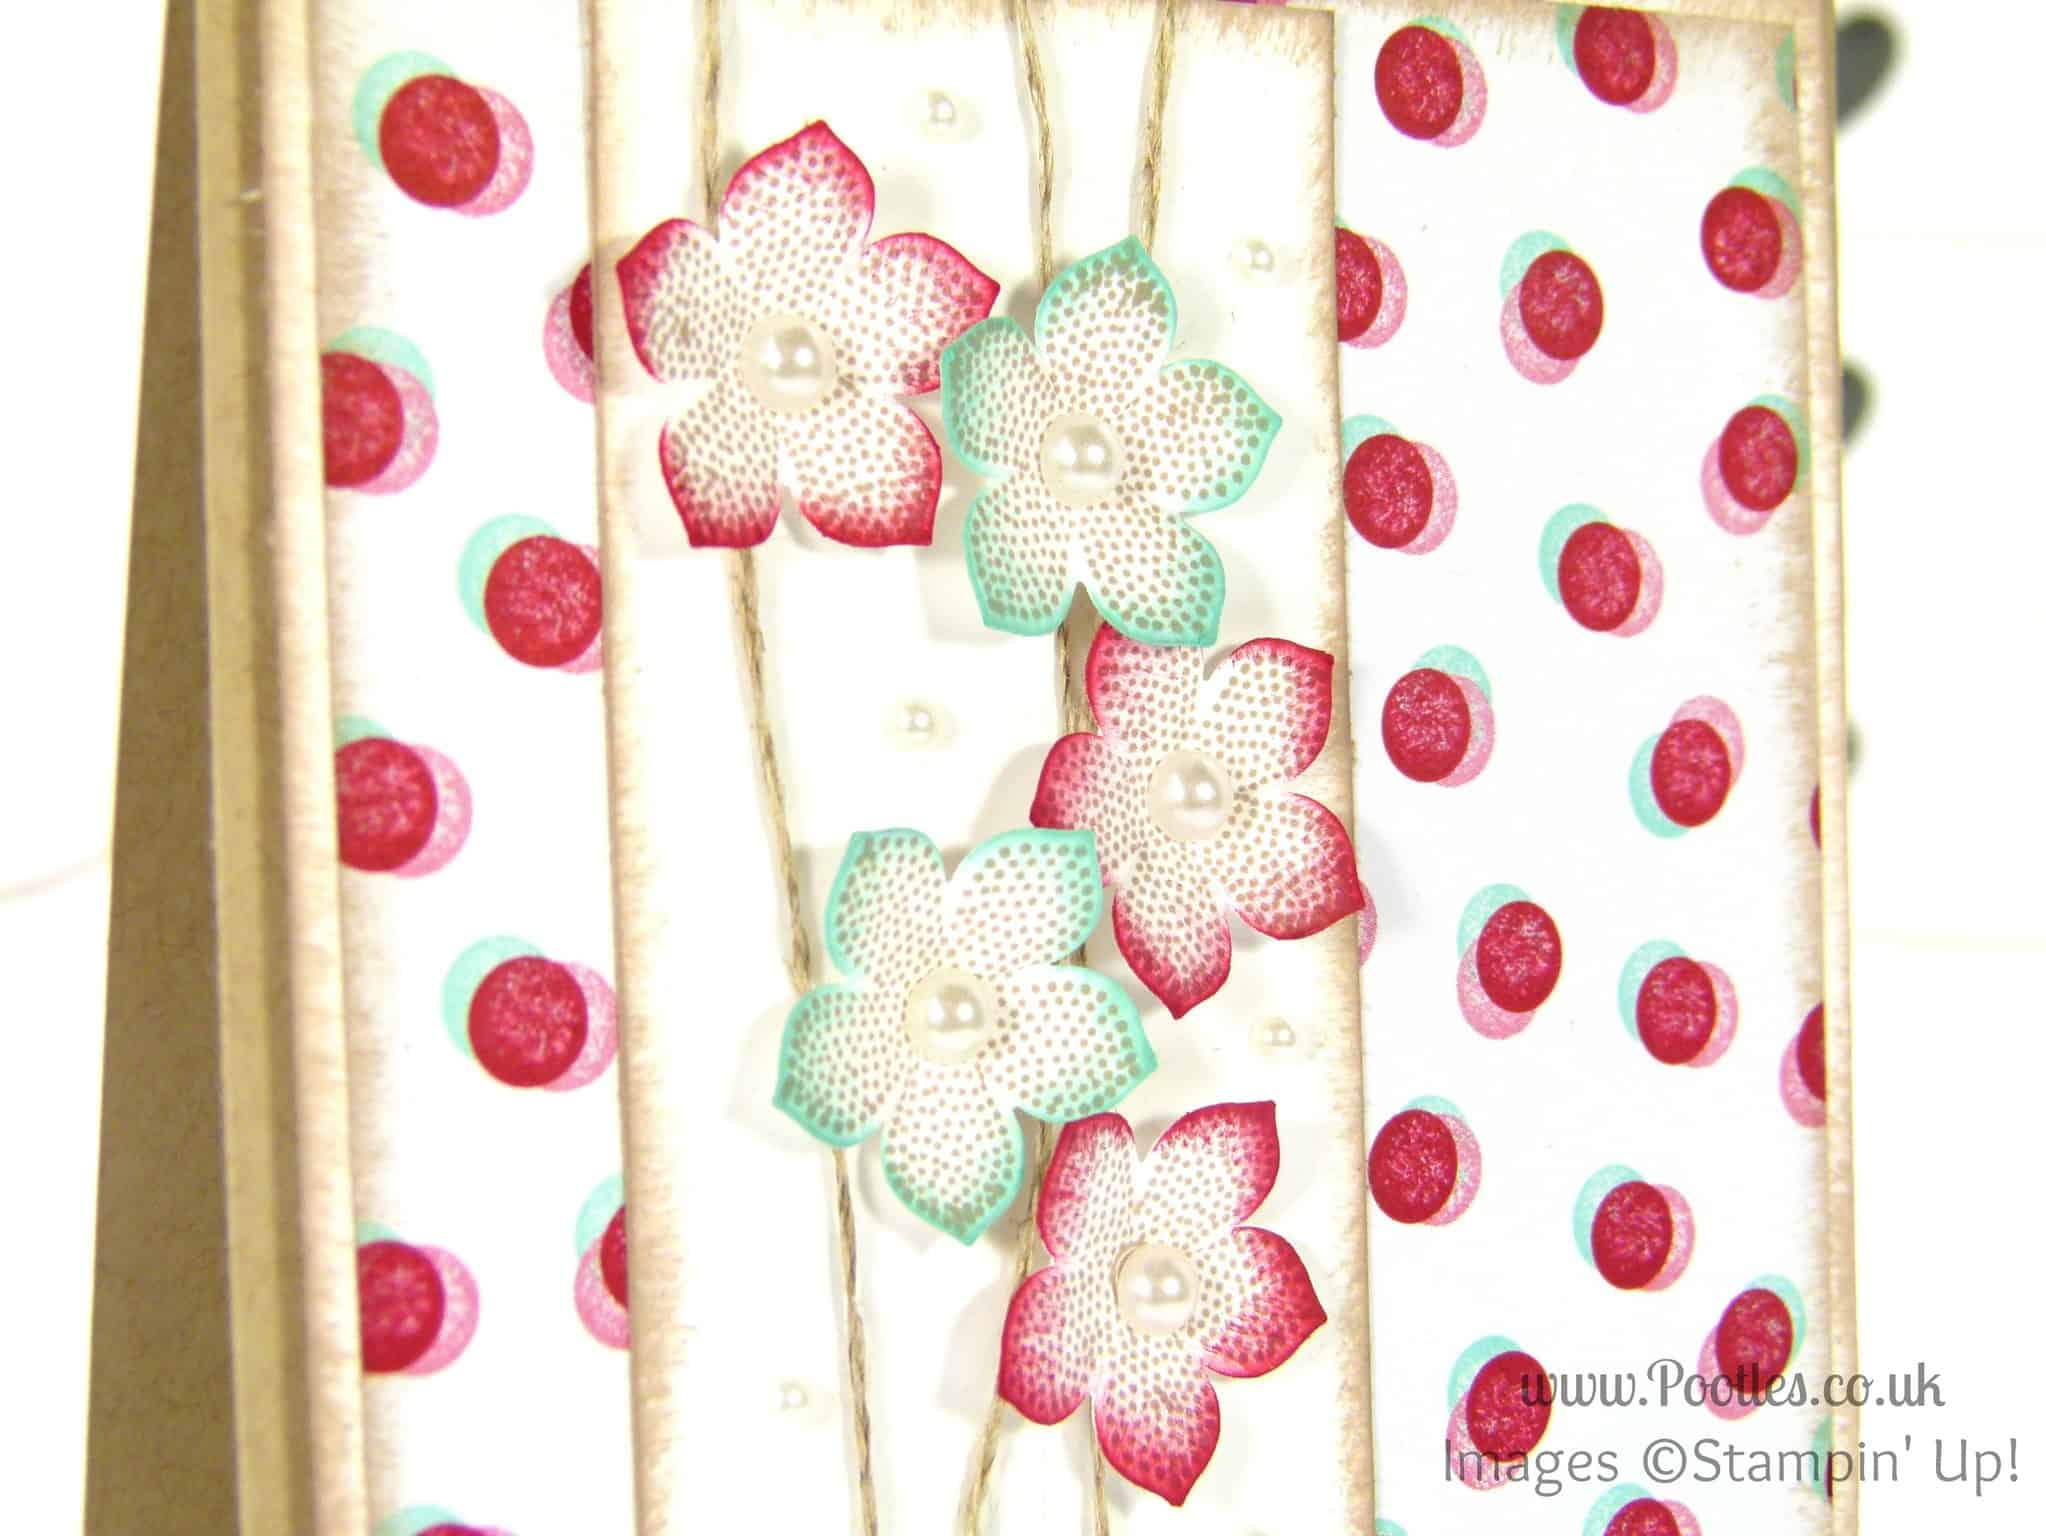 Stampin' Up! UK Demonstrator Pootles - Pretty Petite Fresh Prints Floral Card petite petals detail